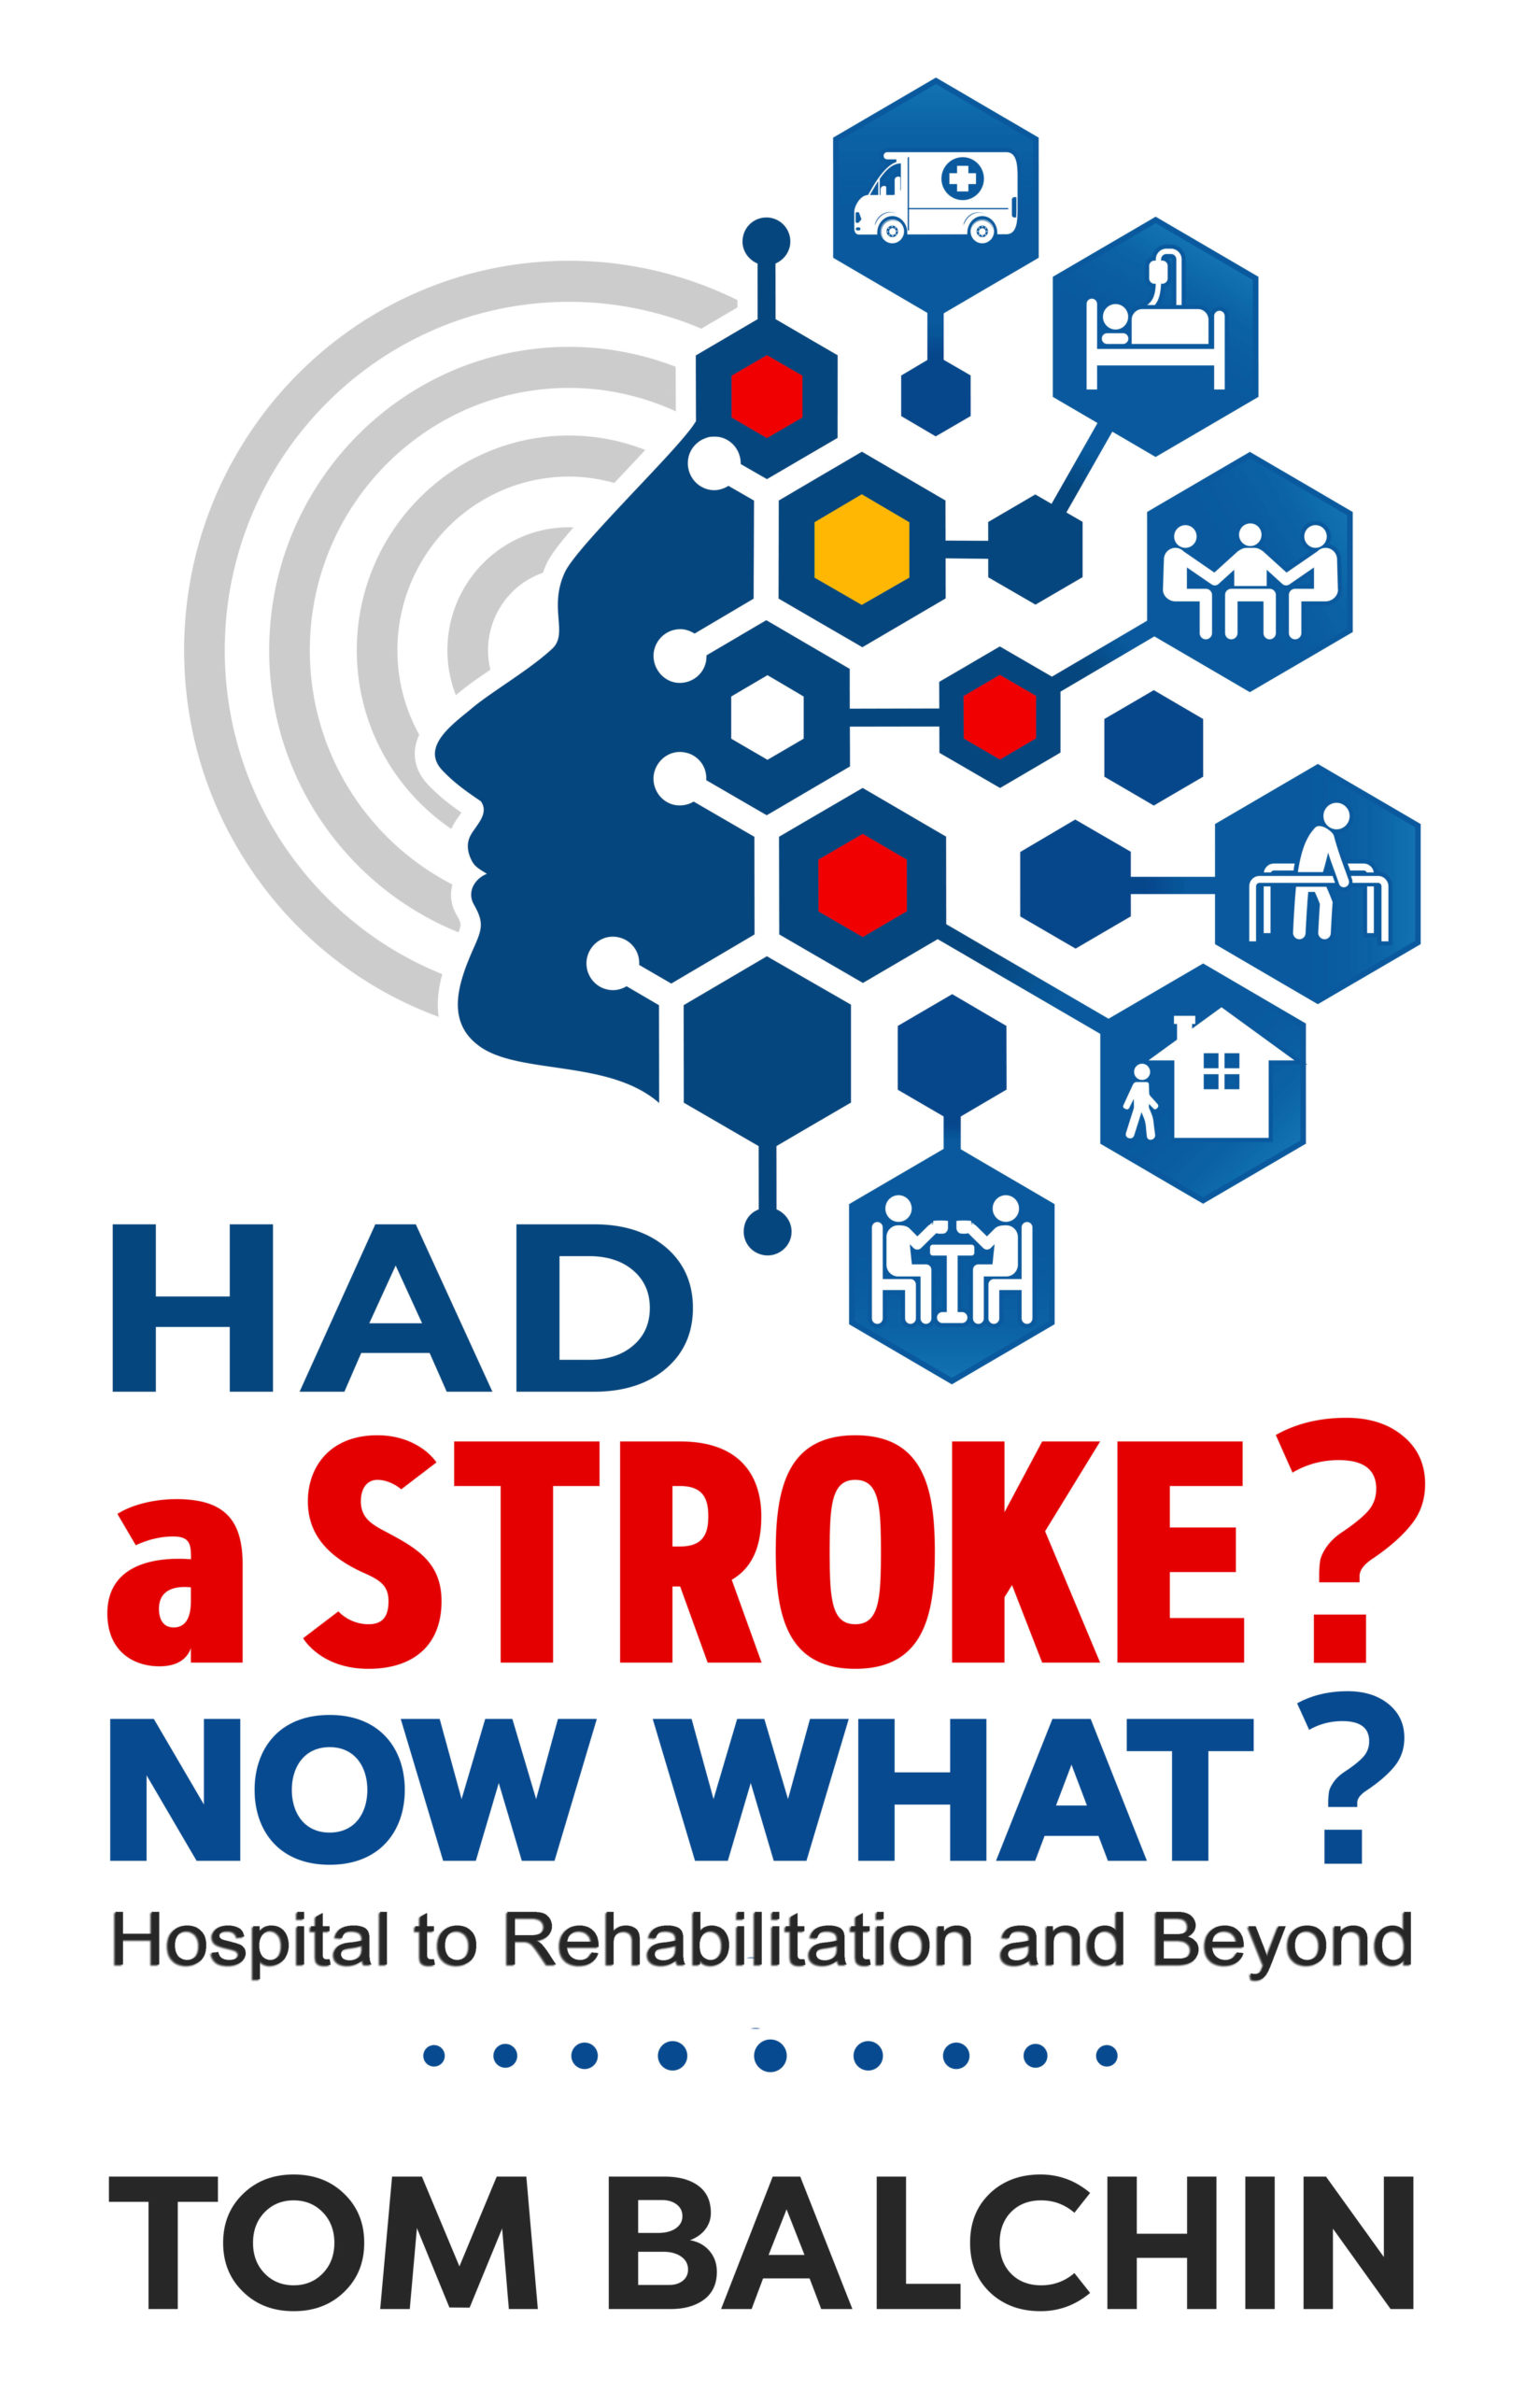 Had a Stroke What Now Tom Balchin 1513661124.jpg scaled - Get your copy of new book! 'Had a Stroke? What Now? by Dr Tom Balchin - Stroke Exercise Training